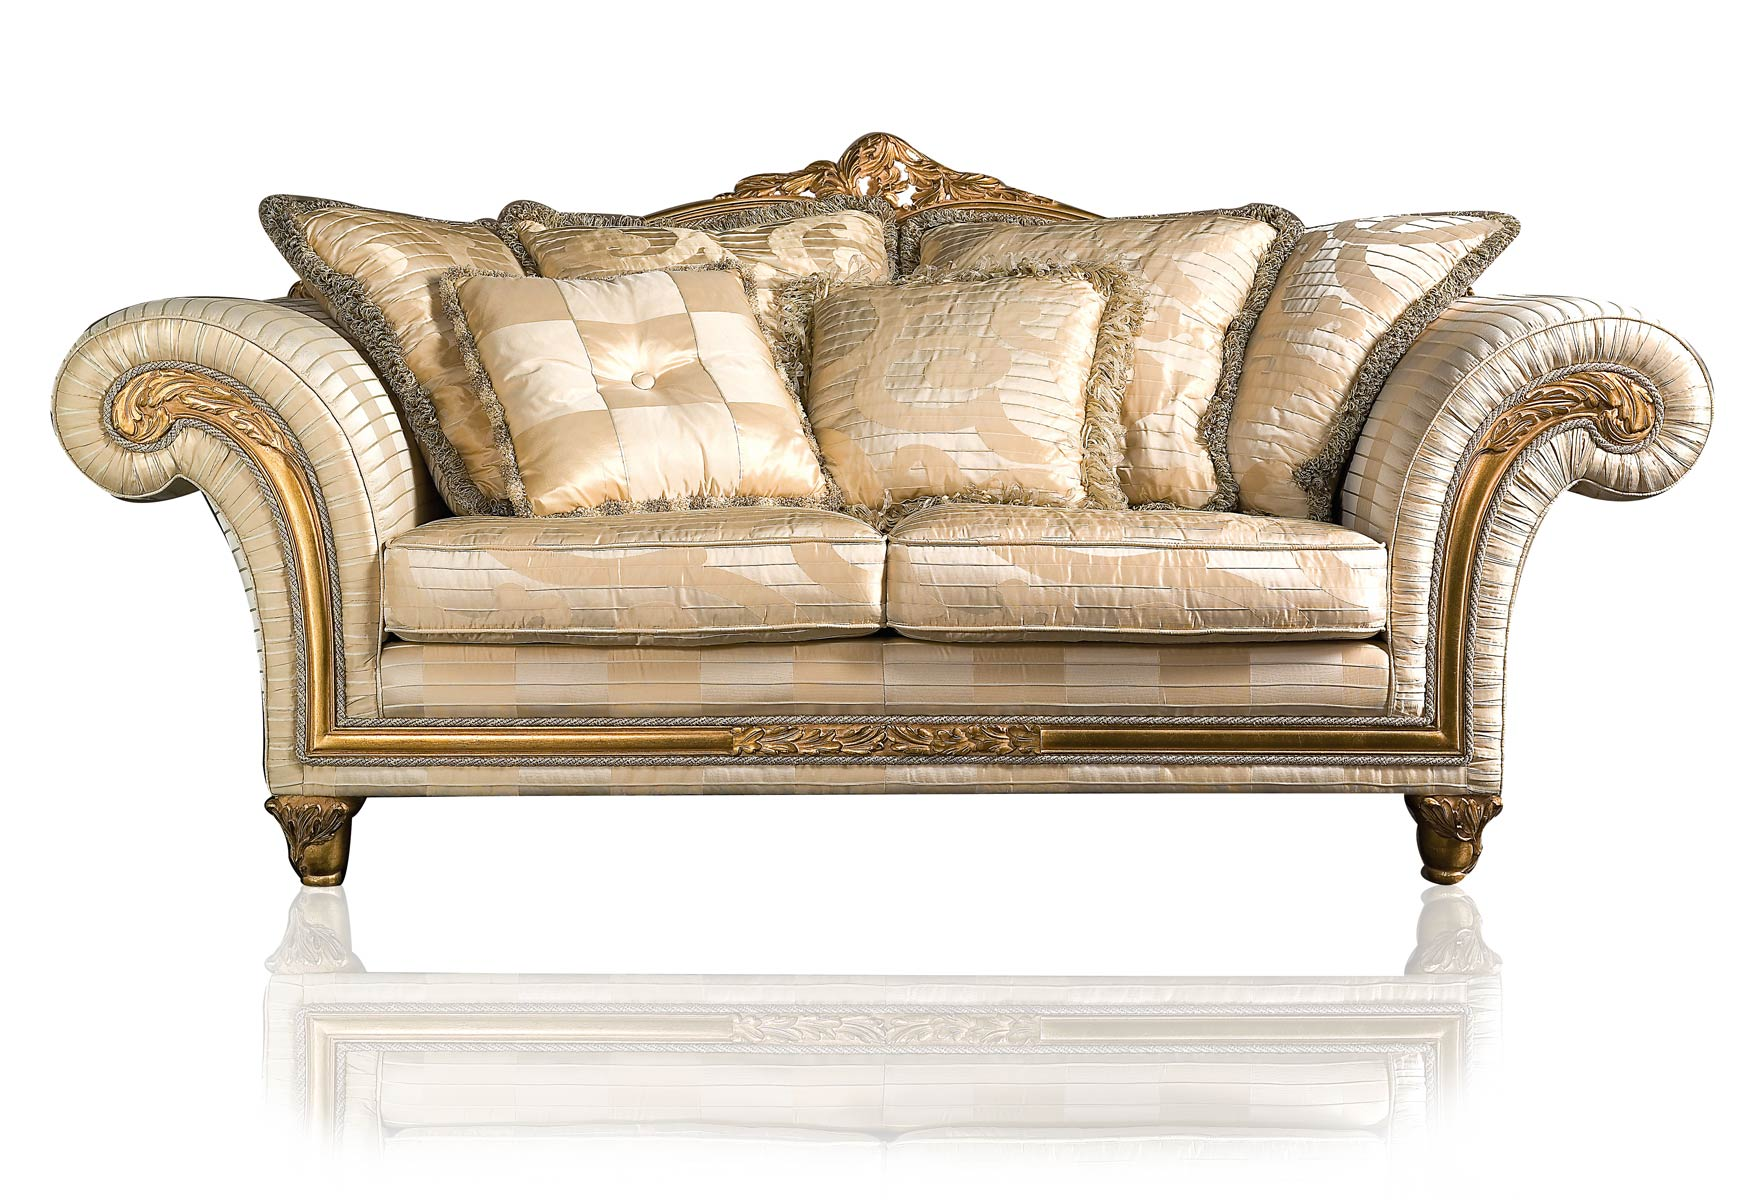 luxury classic sofa and armchairs imperial by vimercati ForClassic Furniture